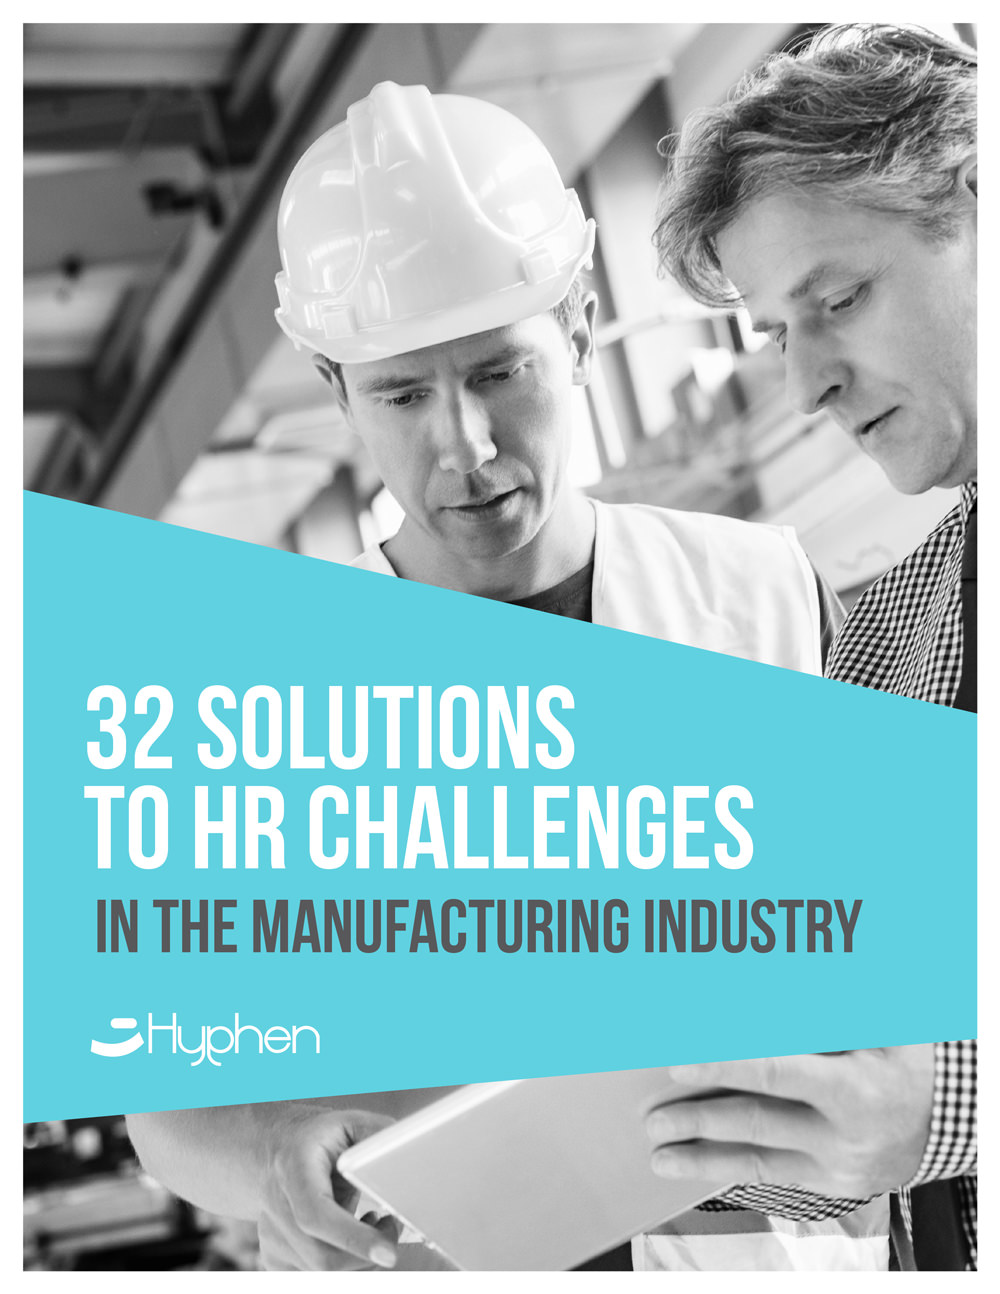 Hyphen_32-Solutions-to-HR-Challenges-In-the-Manufacturing-Industry-mockup.jpg